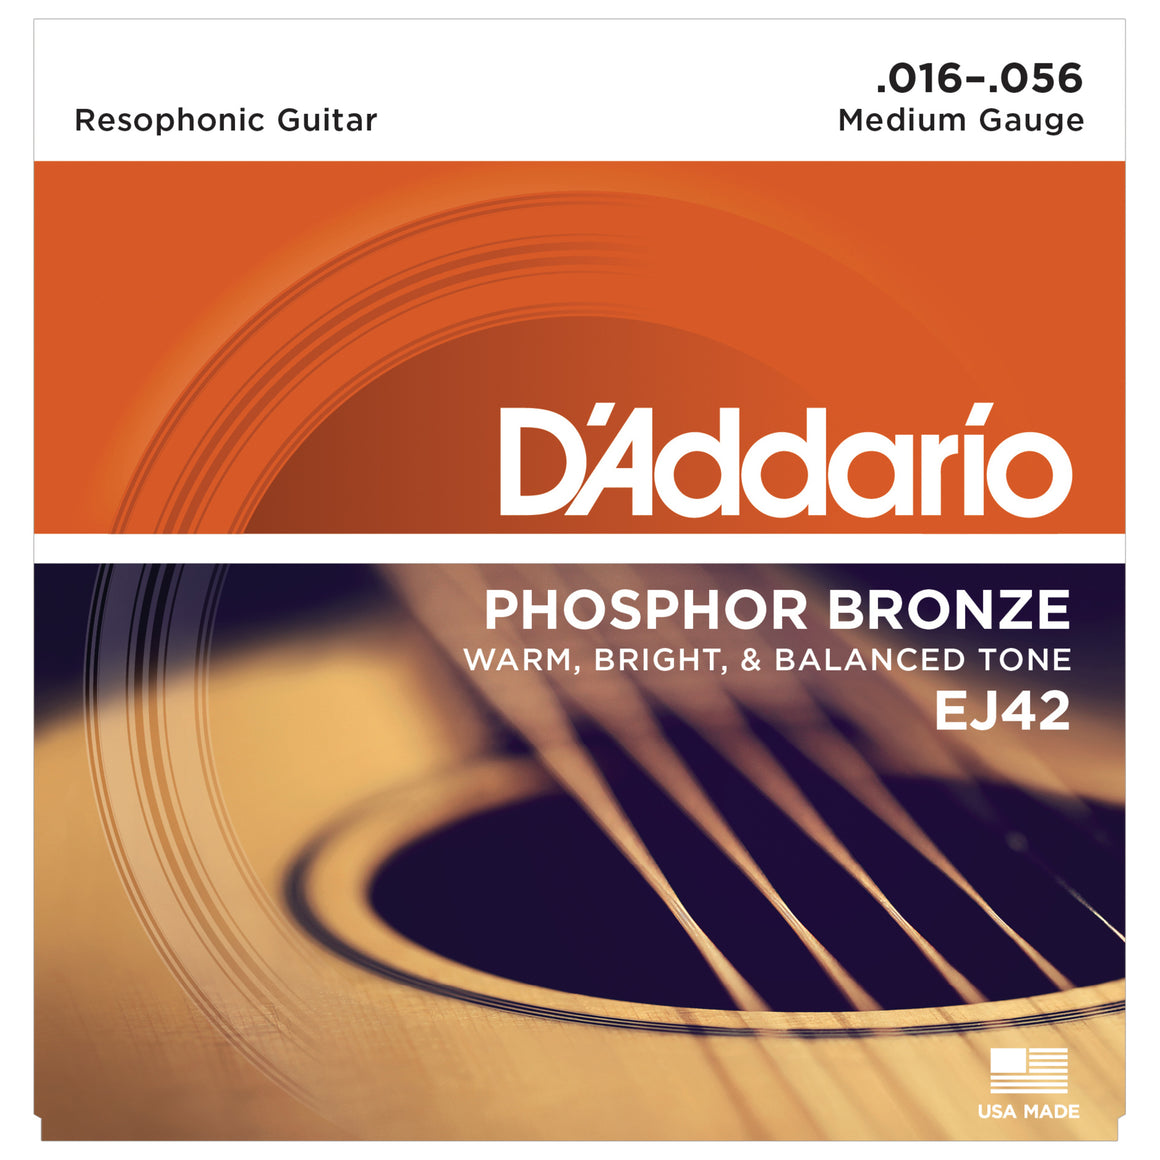 D'Addario EJ42 16-56 Phosphor Bronze Resophonic Guitar Strings